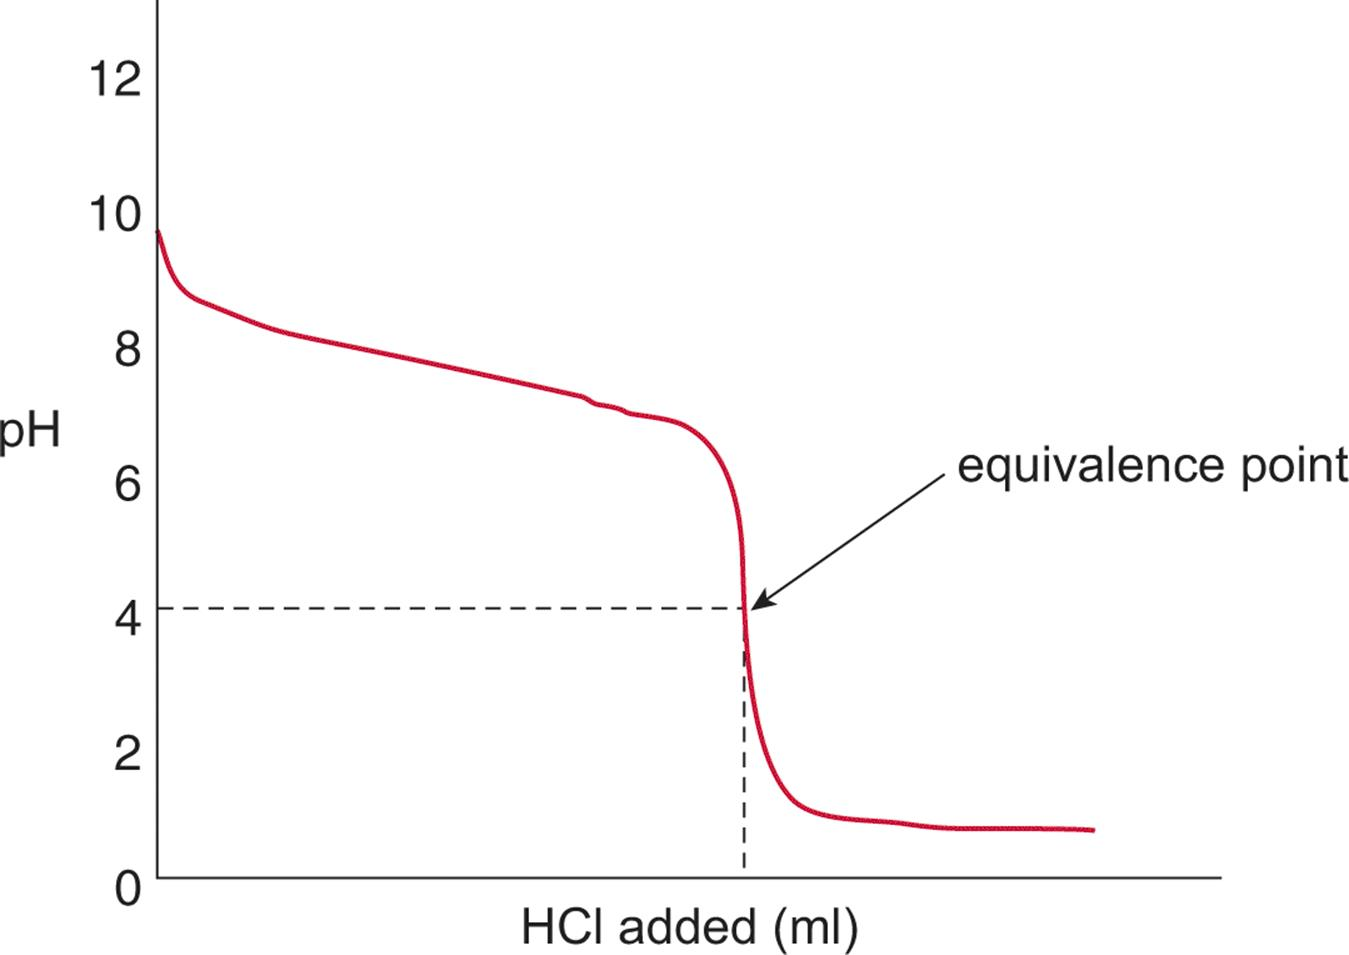 Strong Acid And Weak Base Titration Curve A Strong Acid, Hcl, Is Titrated  Into A Solution Of Weak Base, Nh3, To Yield An Equivalence Point Of Ph < 7